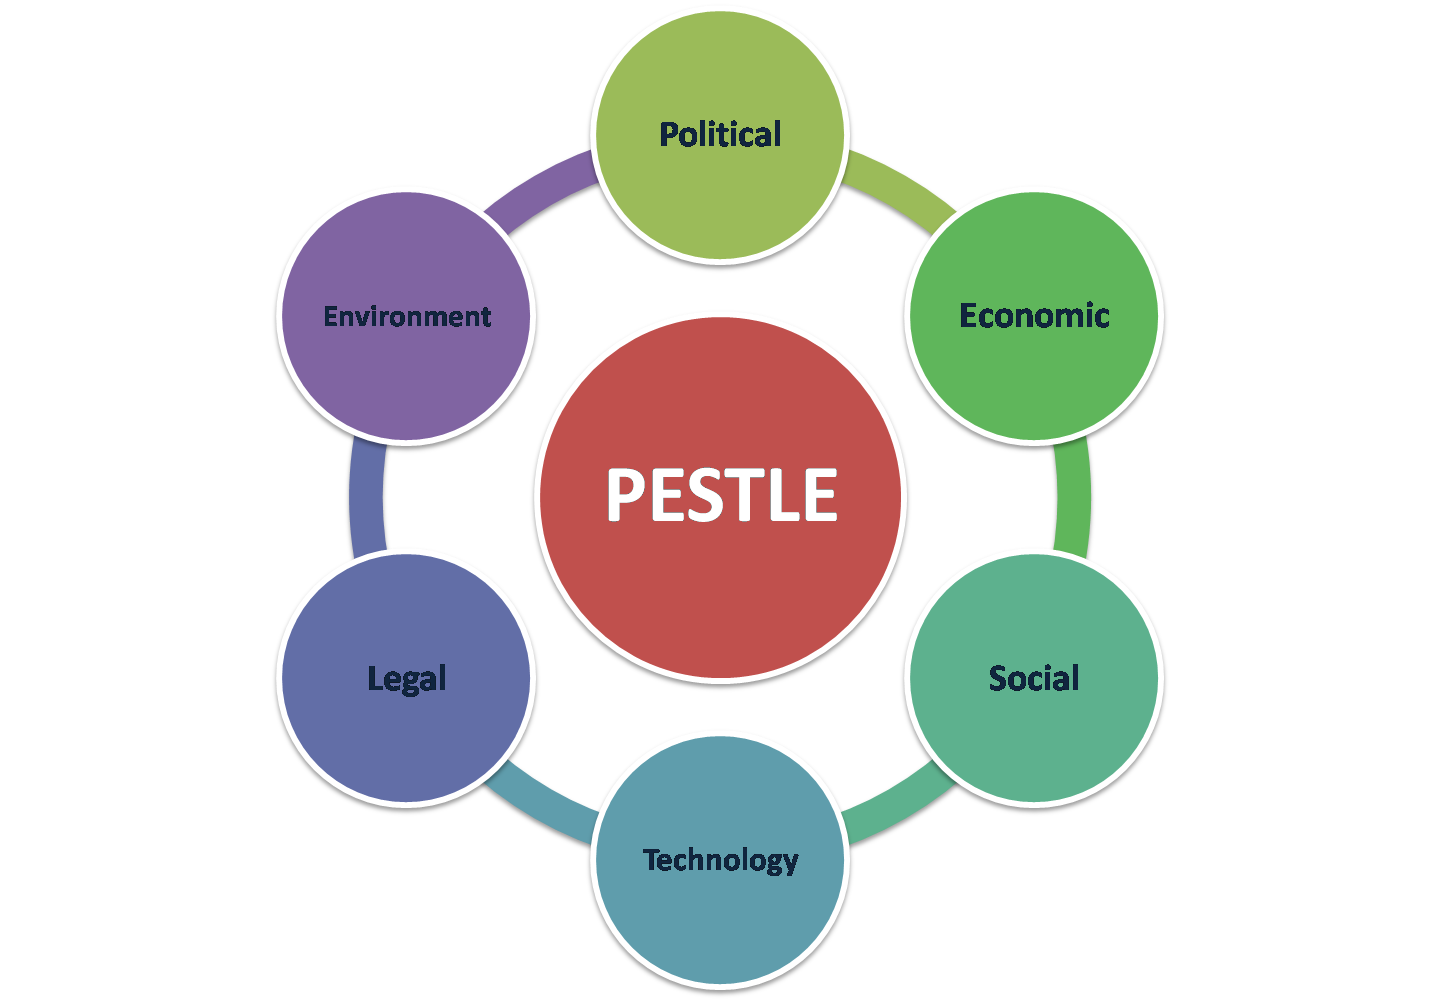 using pest analysis as a tool The pest analysis is a useful tool for understanding market growth or decline, and as such the position, potential and direction for a business.